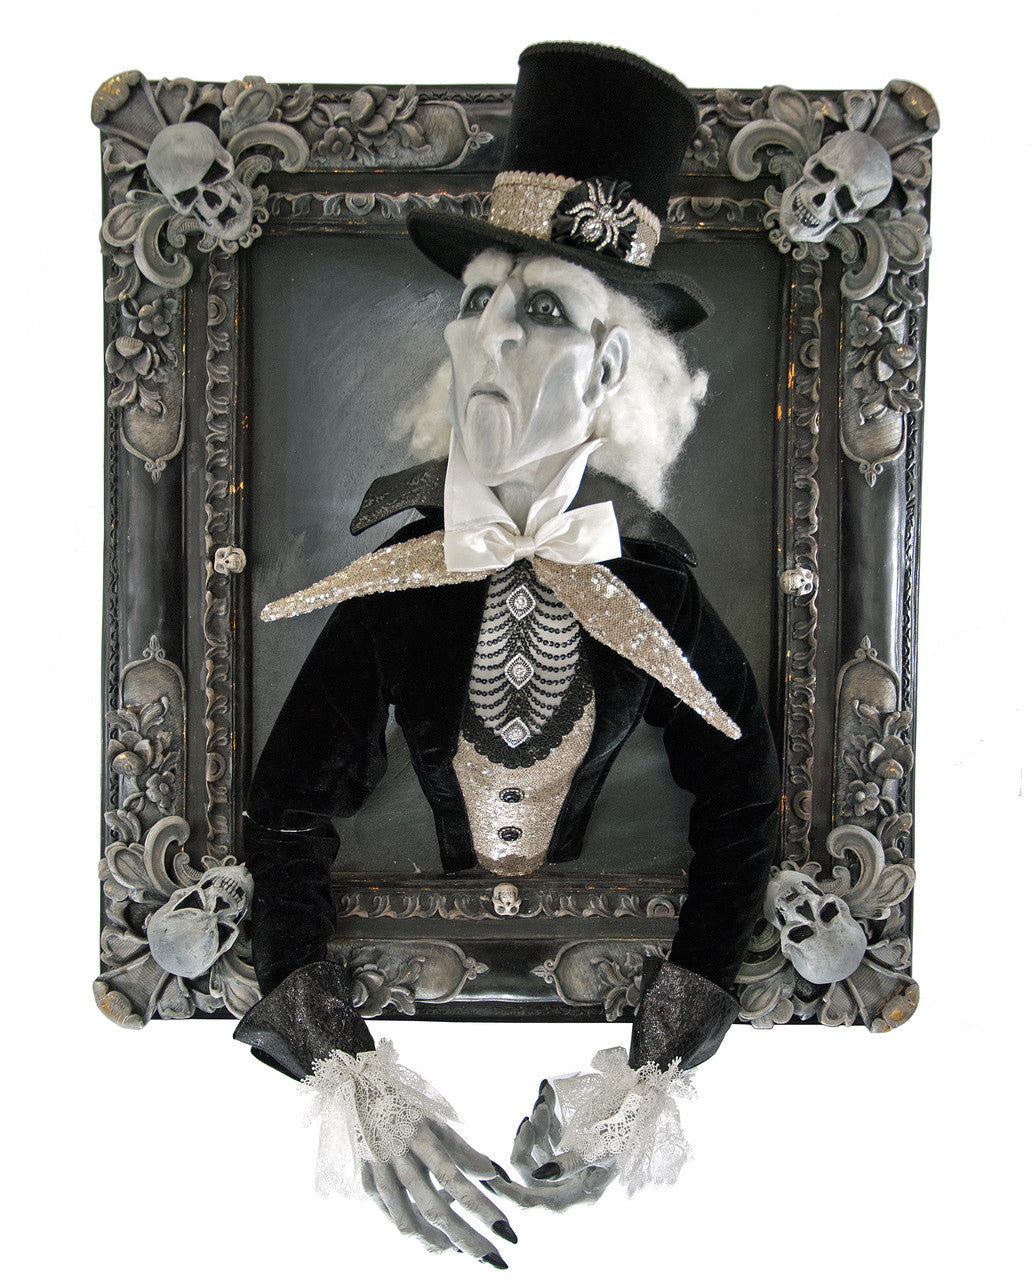 Lord Blackmoore in Frame Halloween Prop